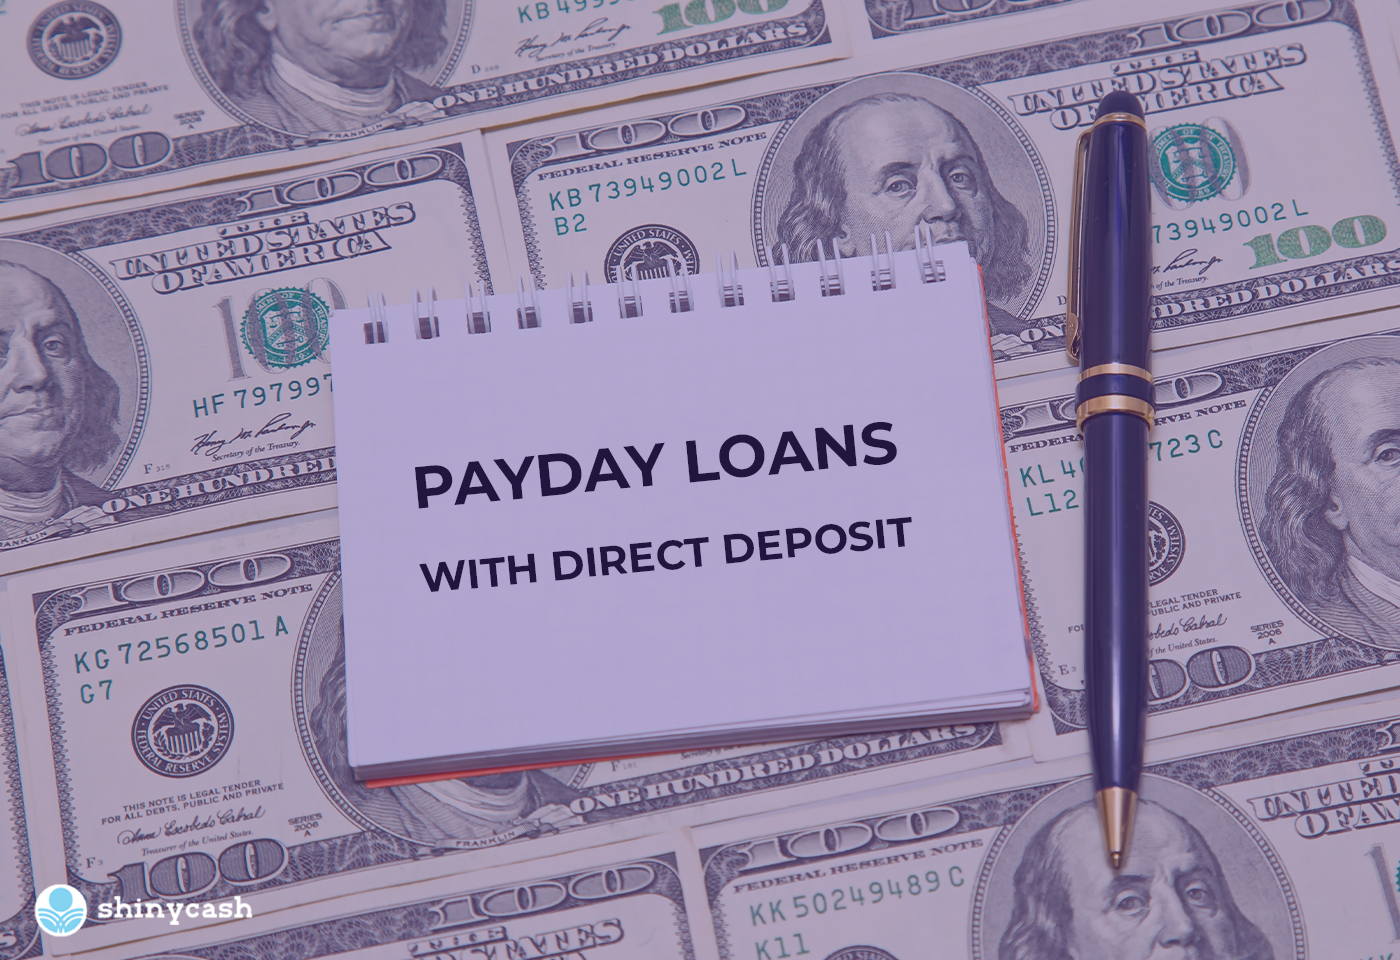 Payday Loans with Direct Deposit